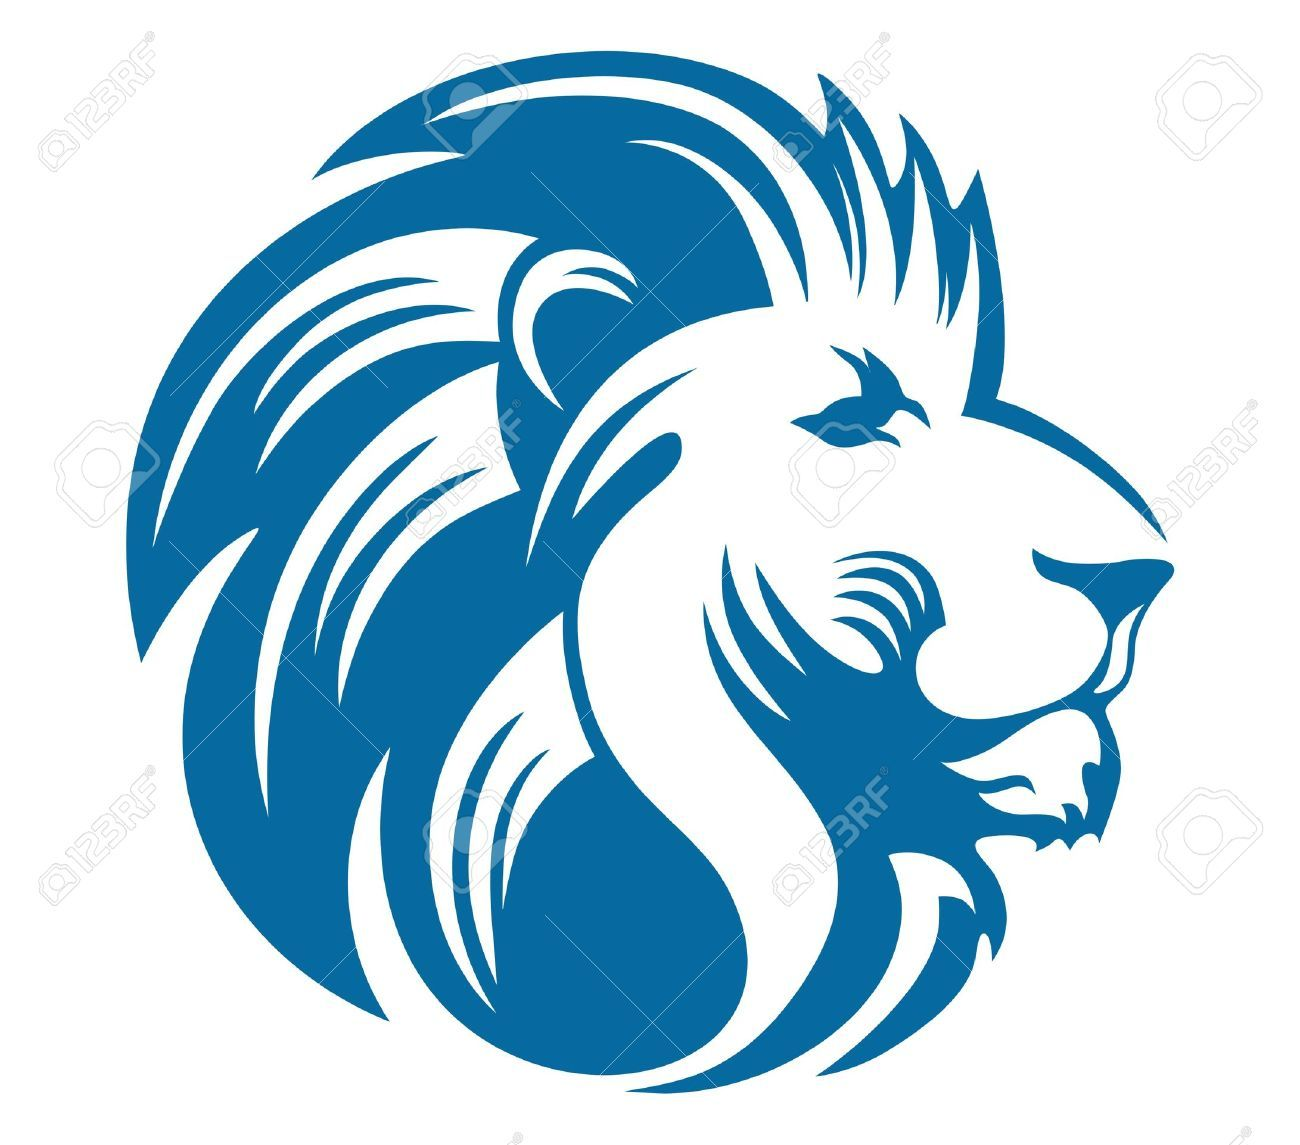 Blue lion logo with crown - photo#54